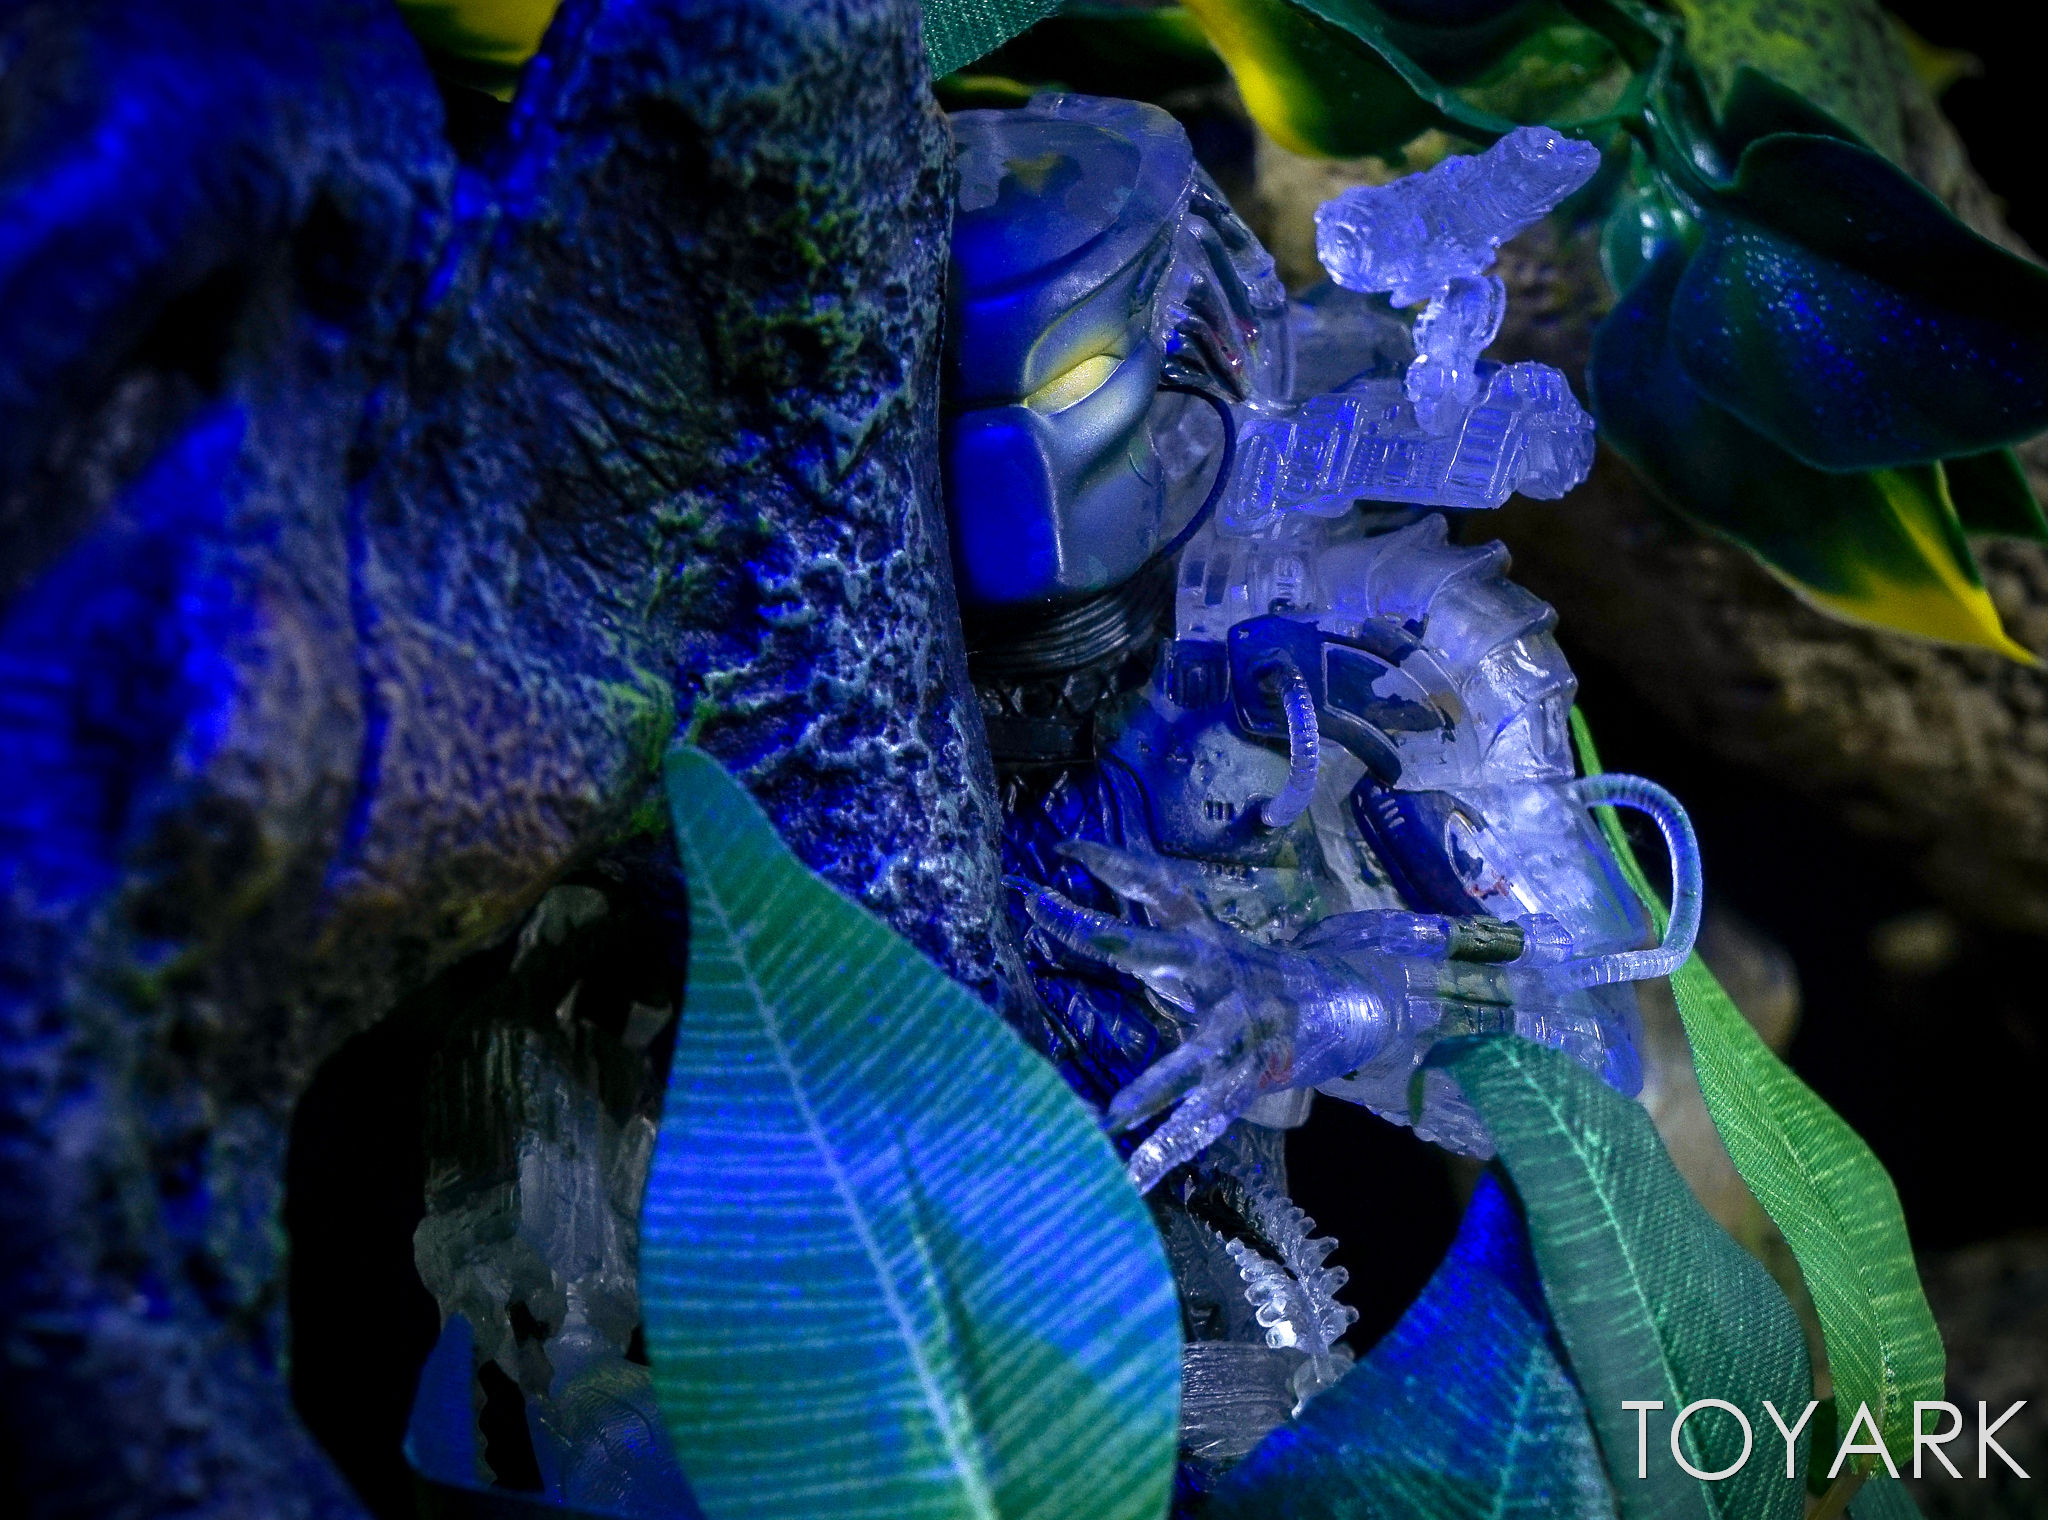 http://news.toyark.com/wp-content/uploads/sites/4/2017/03/NECA-Jungle-Demon-Predator-026.jpg